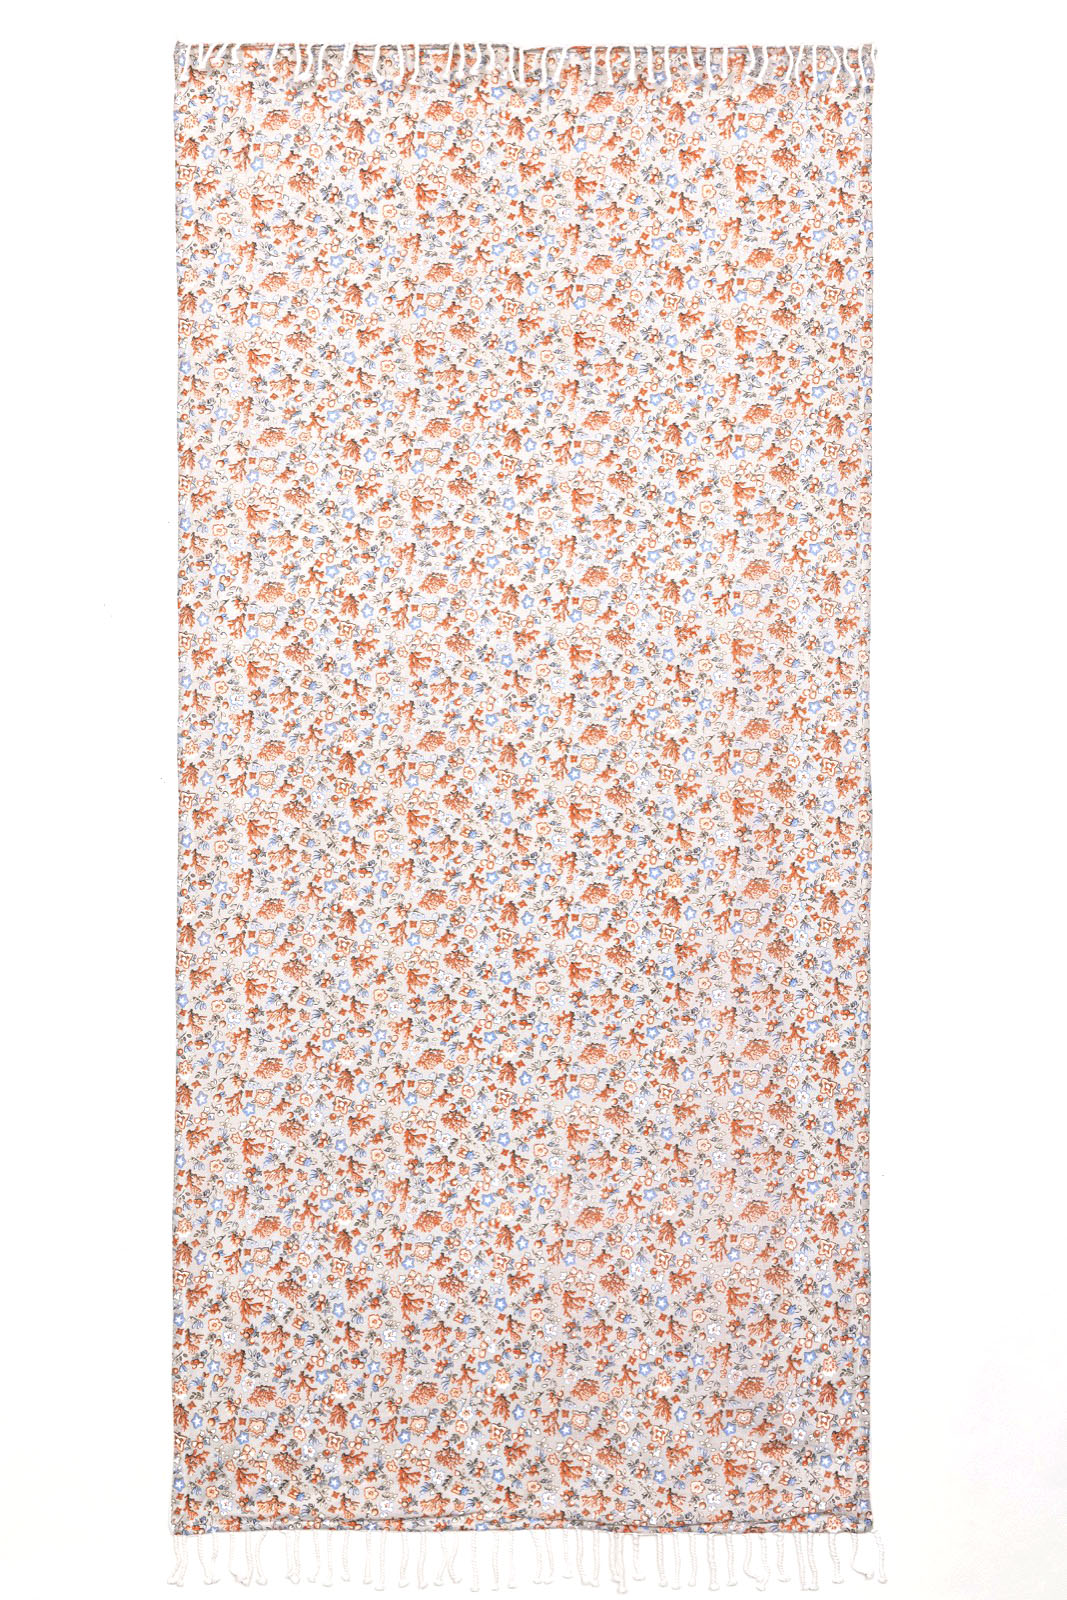 FOUTA LUXE CAPSUD GRIS CORAIL 90x190